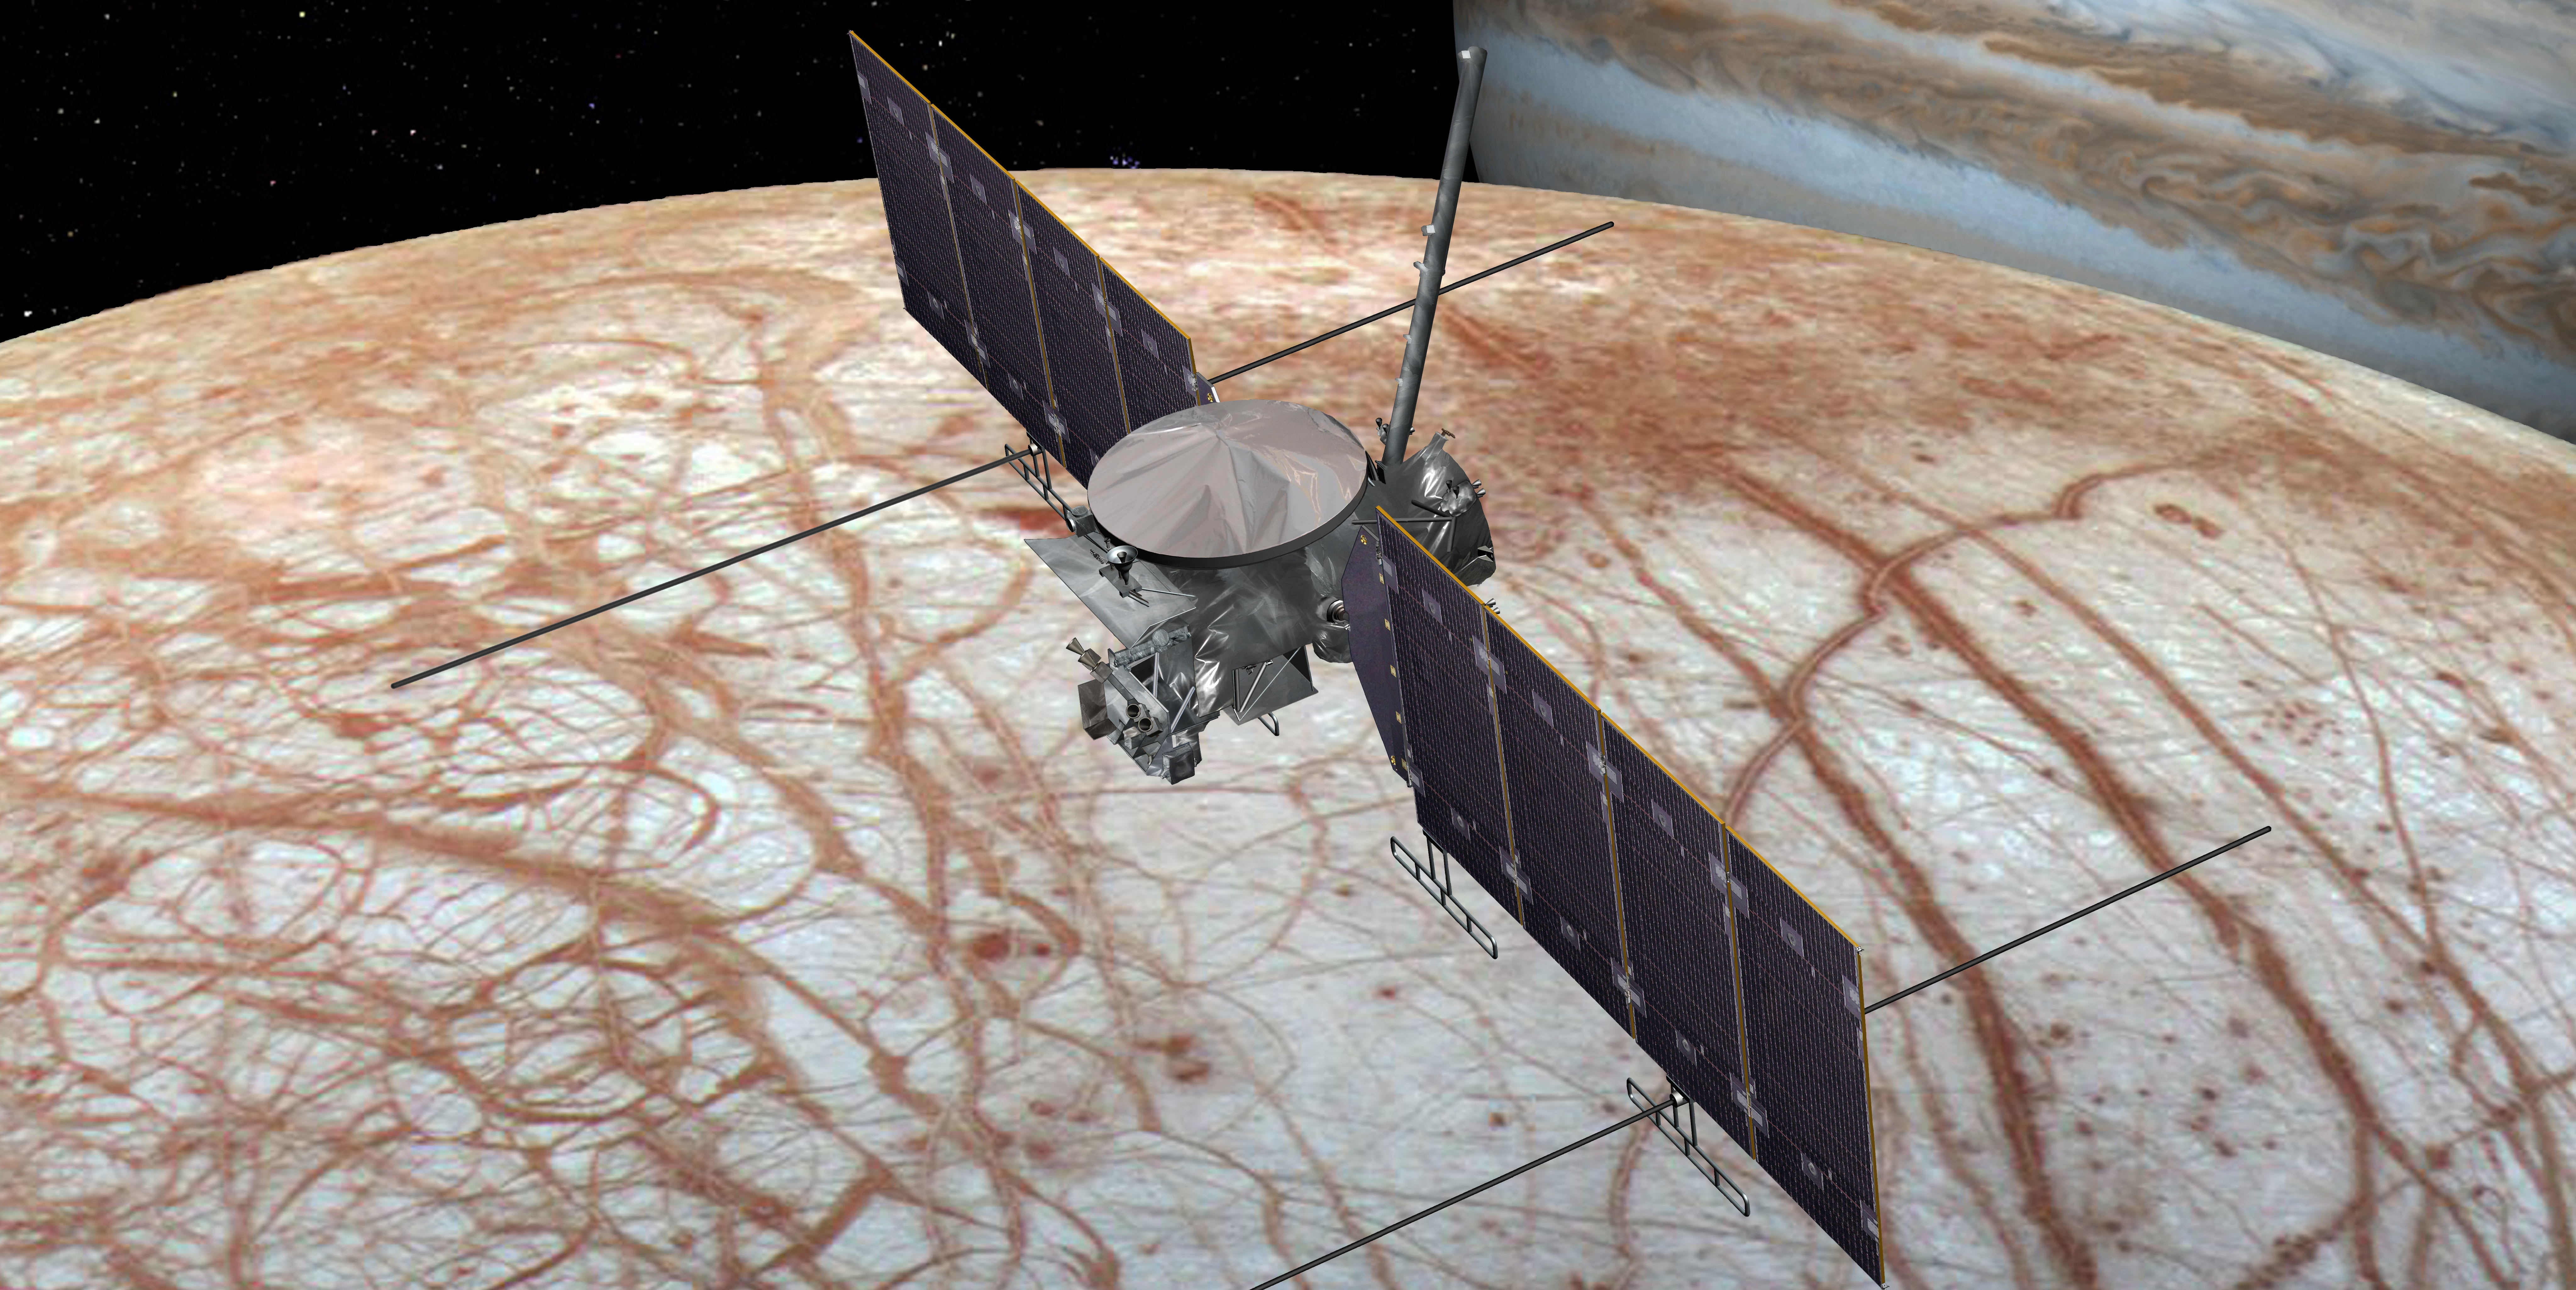 NASA Says Europa Is Spewing Out Jets of Water Into Space